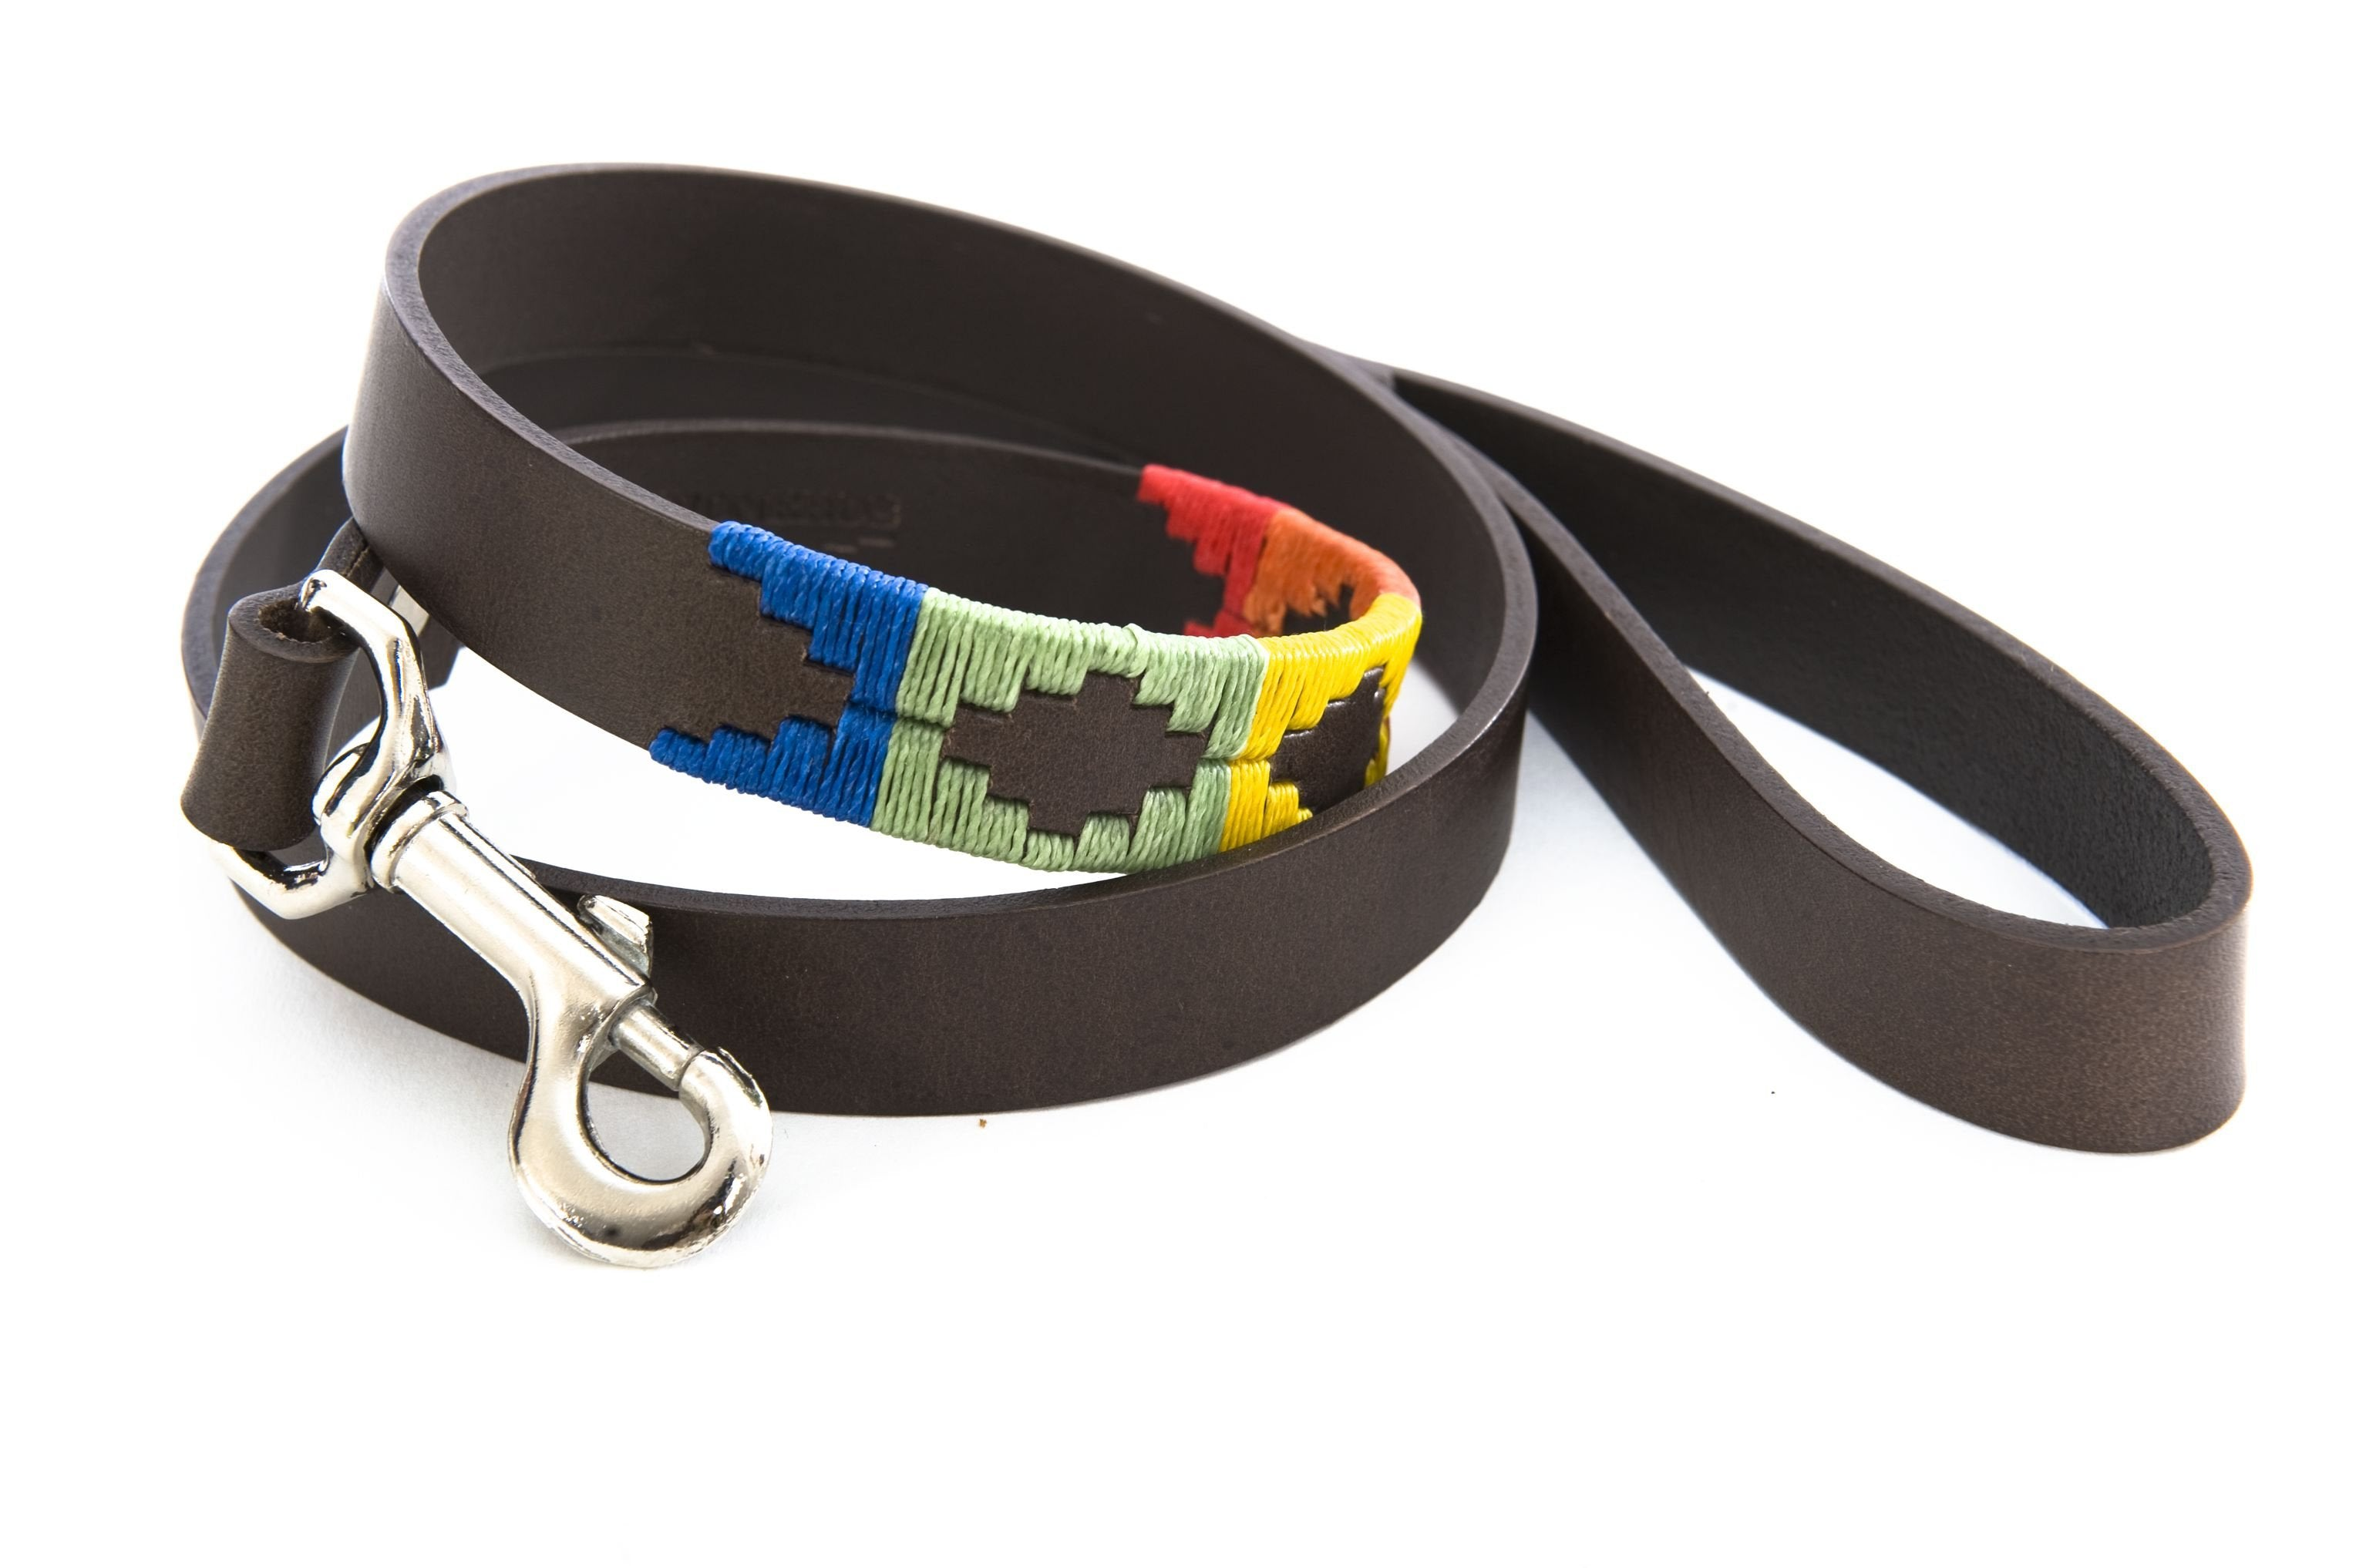 Pioneros Brown Polo Belt Style Dog Lead in Rainbow